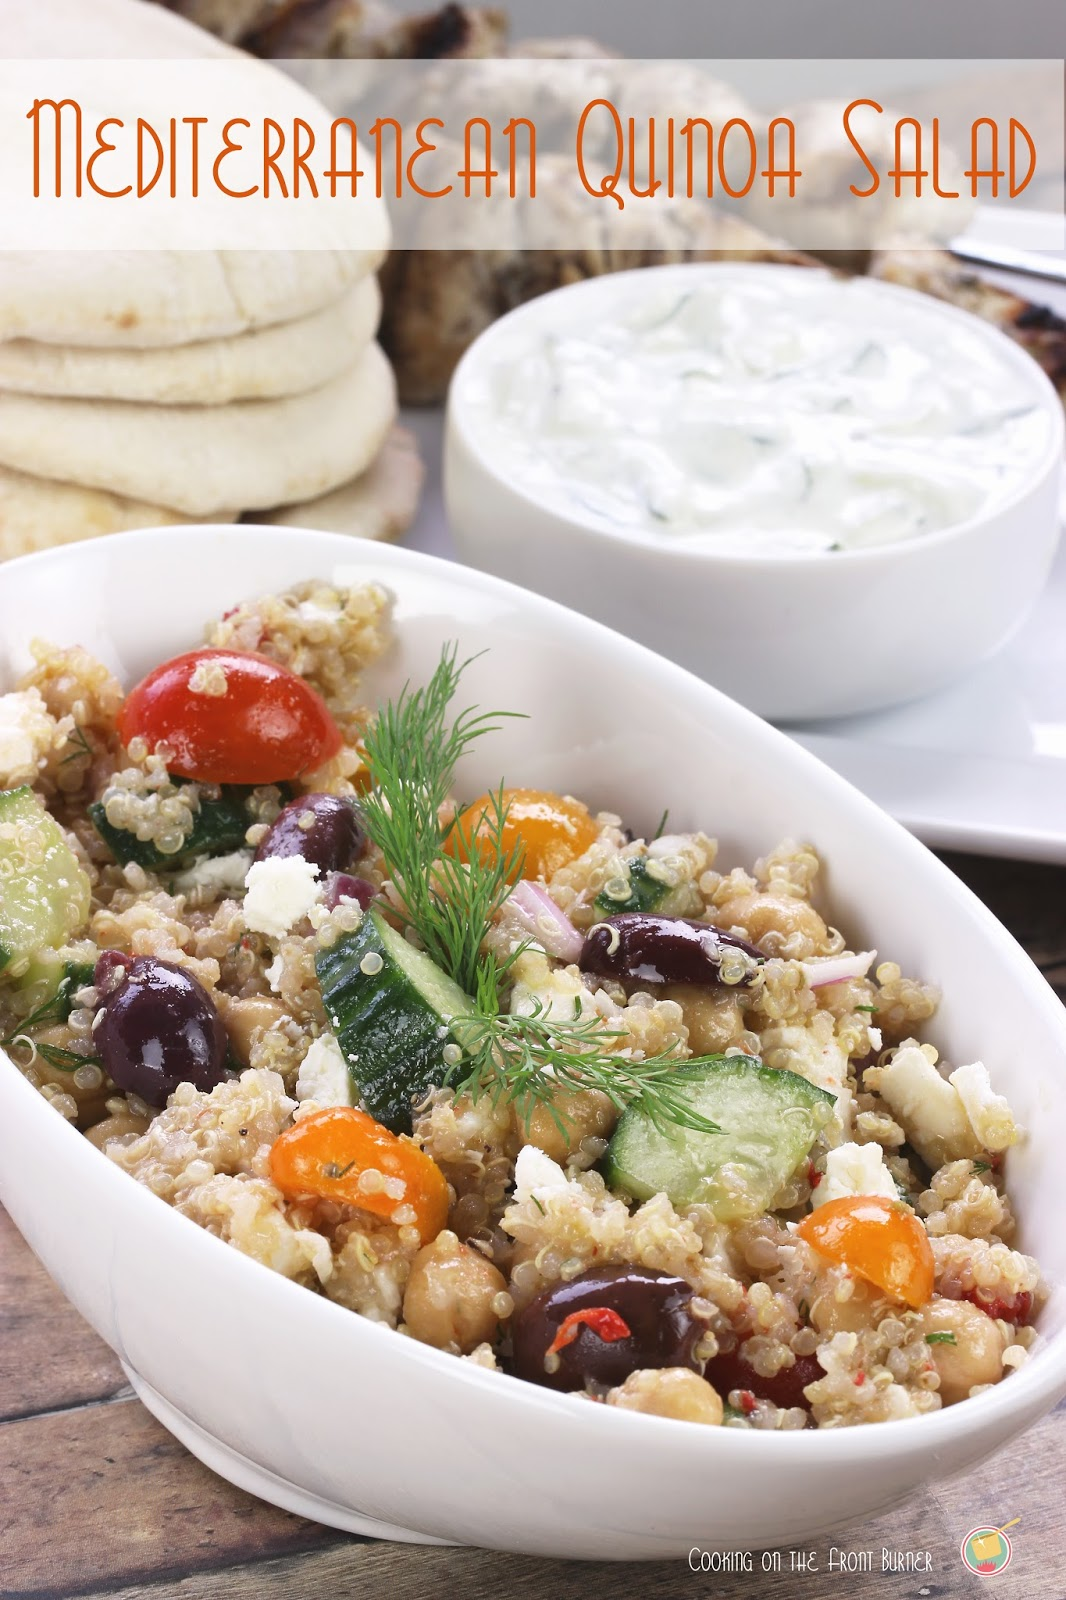 Mediterranean Quinoa Salad | Cooking on the Front Burner